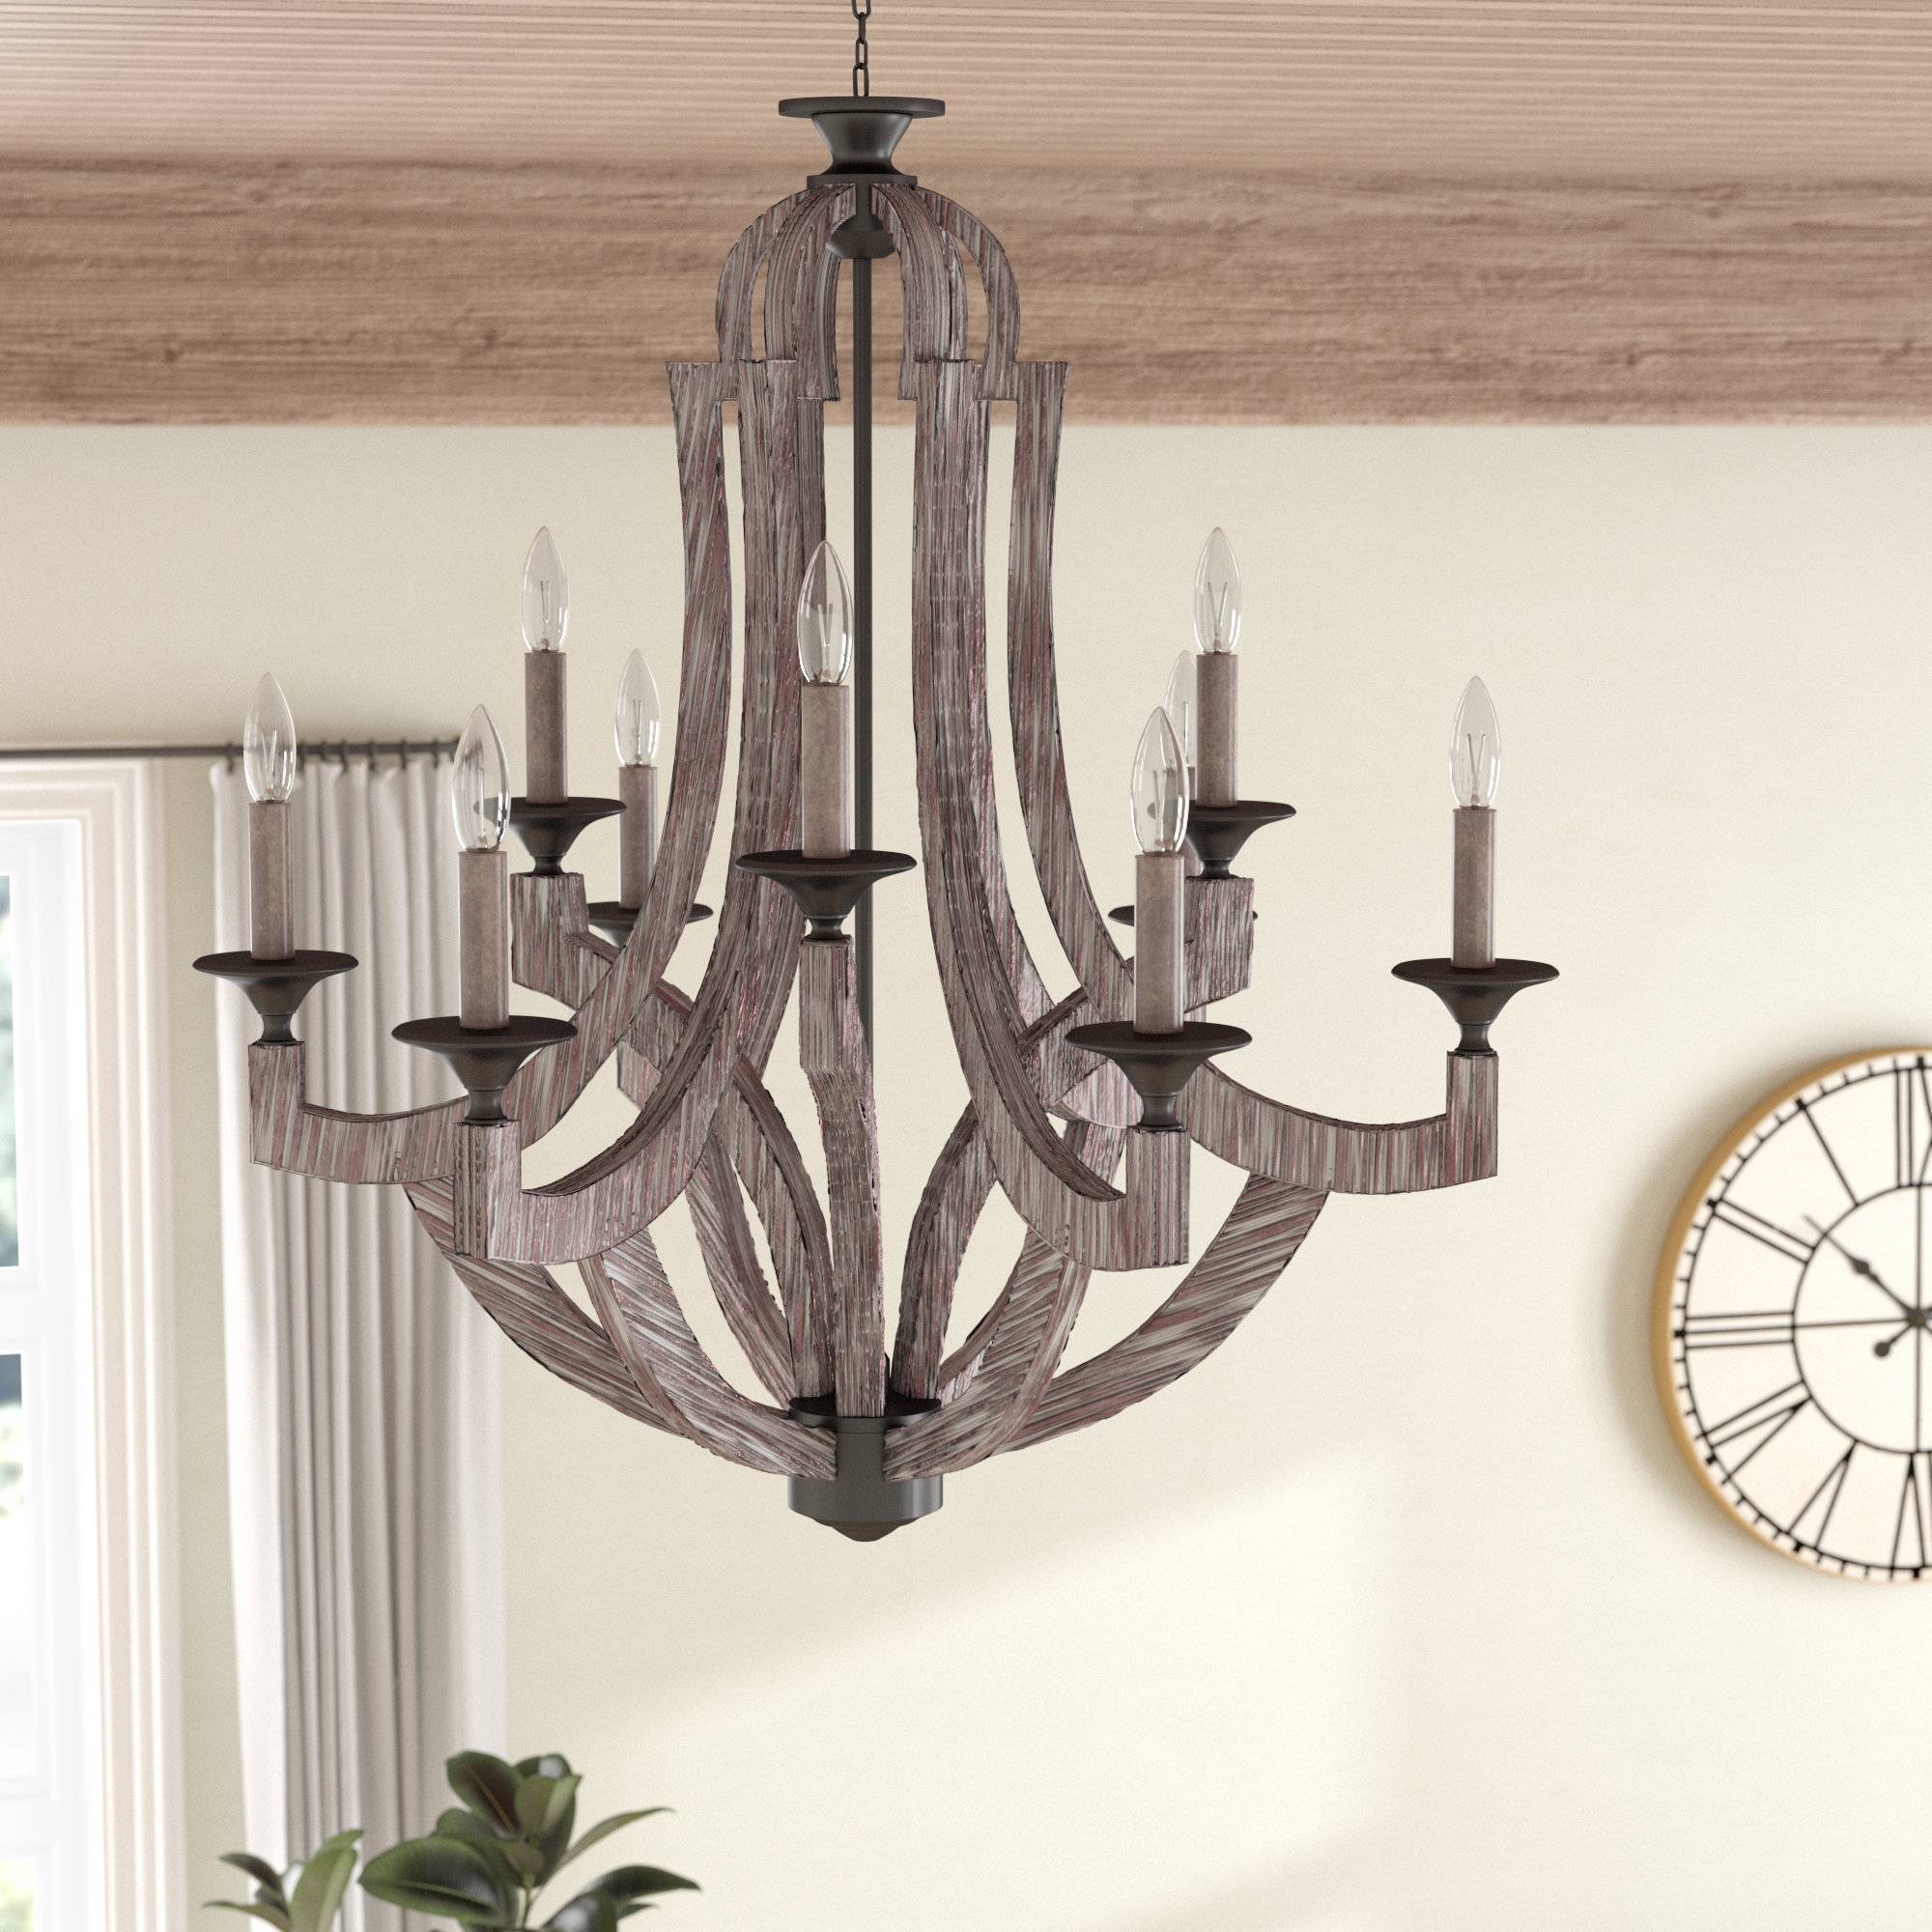 Wayfair With Regard To Most Up To Date Watford 9 Light Candle Style Chandeliers (Gallery 14 of 20)